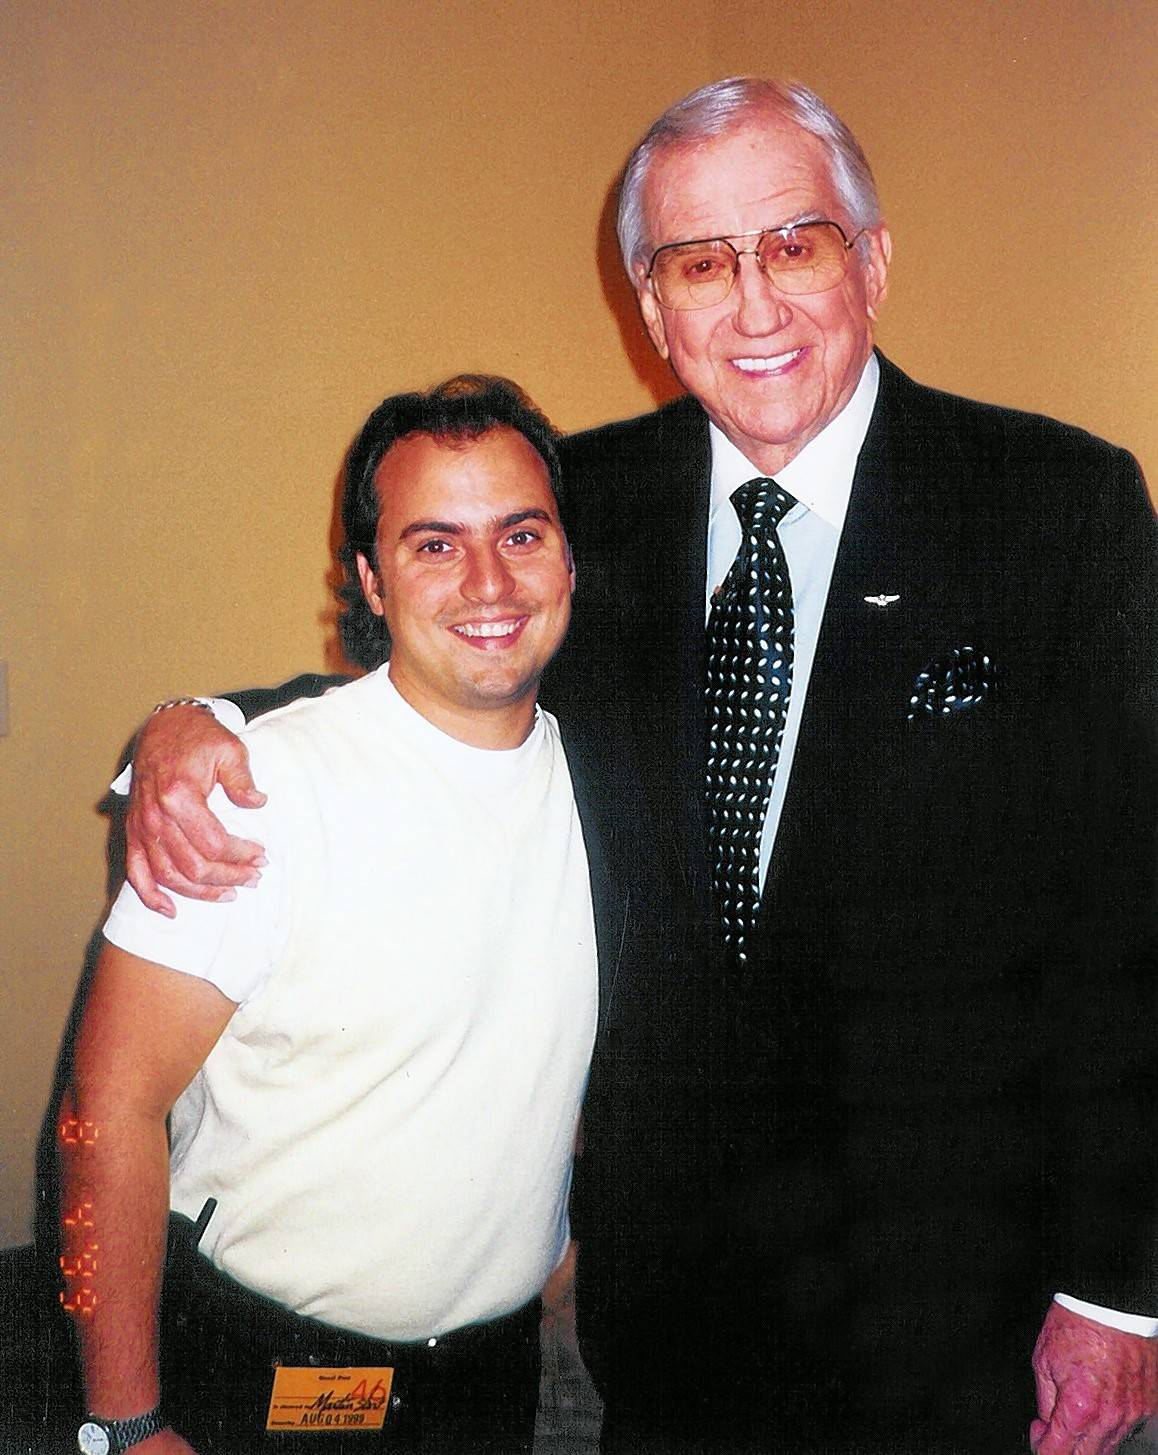 Ron Onesti recalls how Johnny Carson sidekick Ed McMahon, right, gave Onesti a top showbiz memory he treasures to this day.